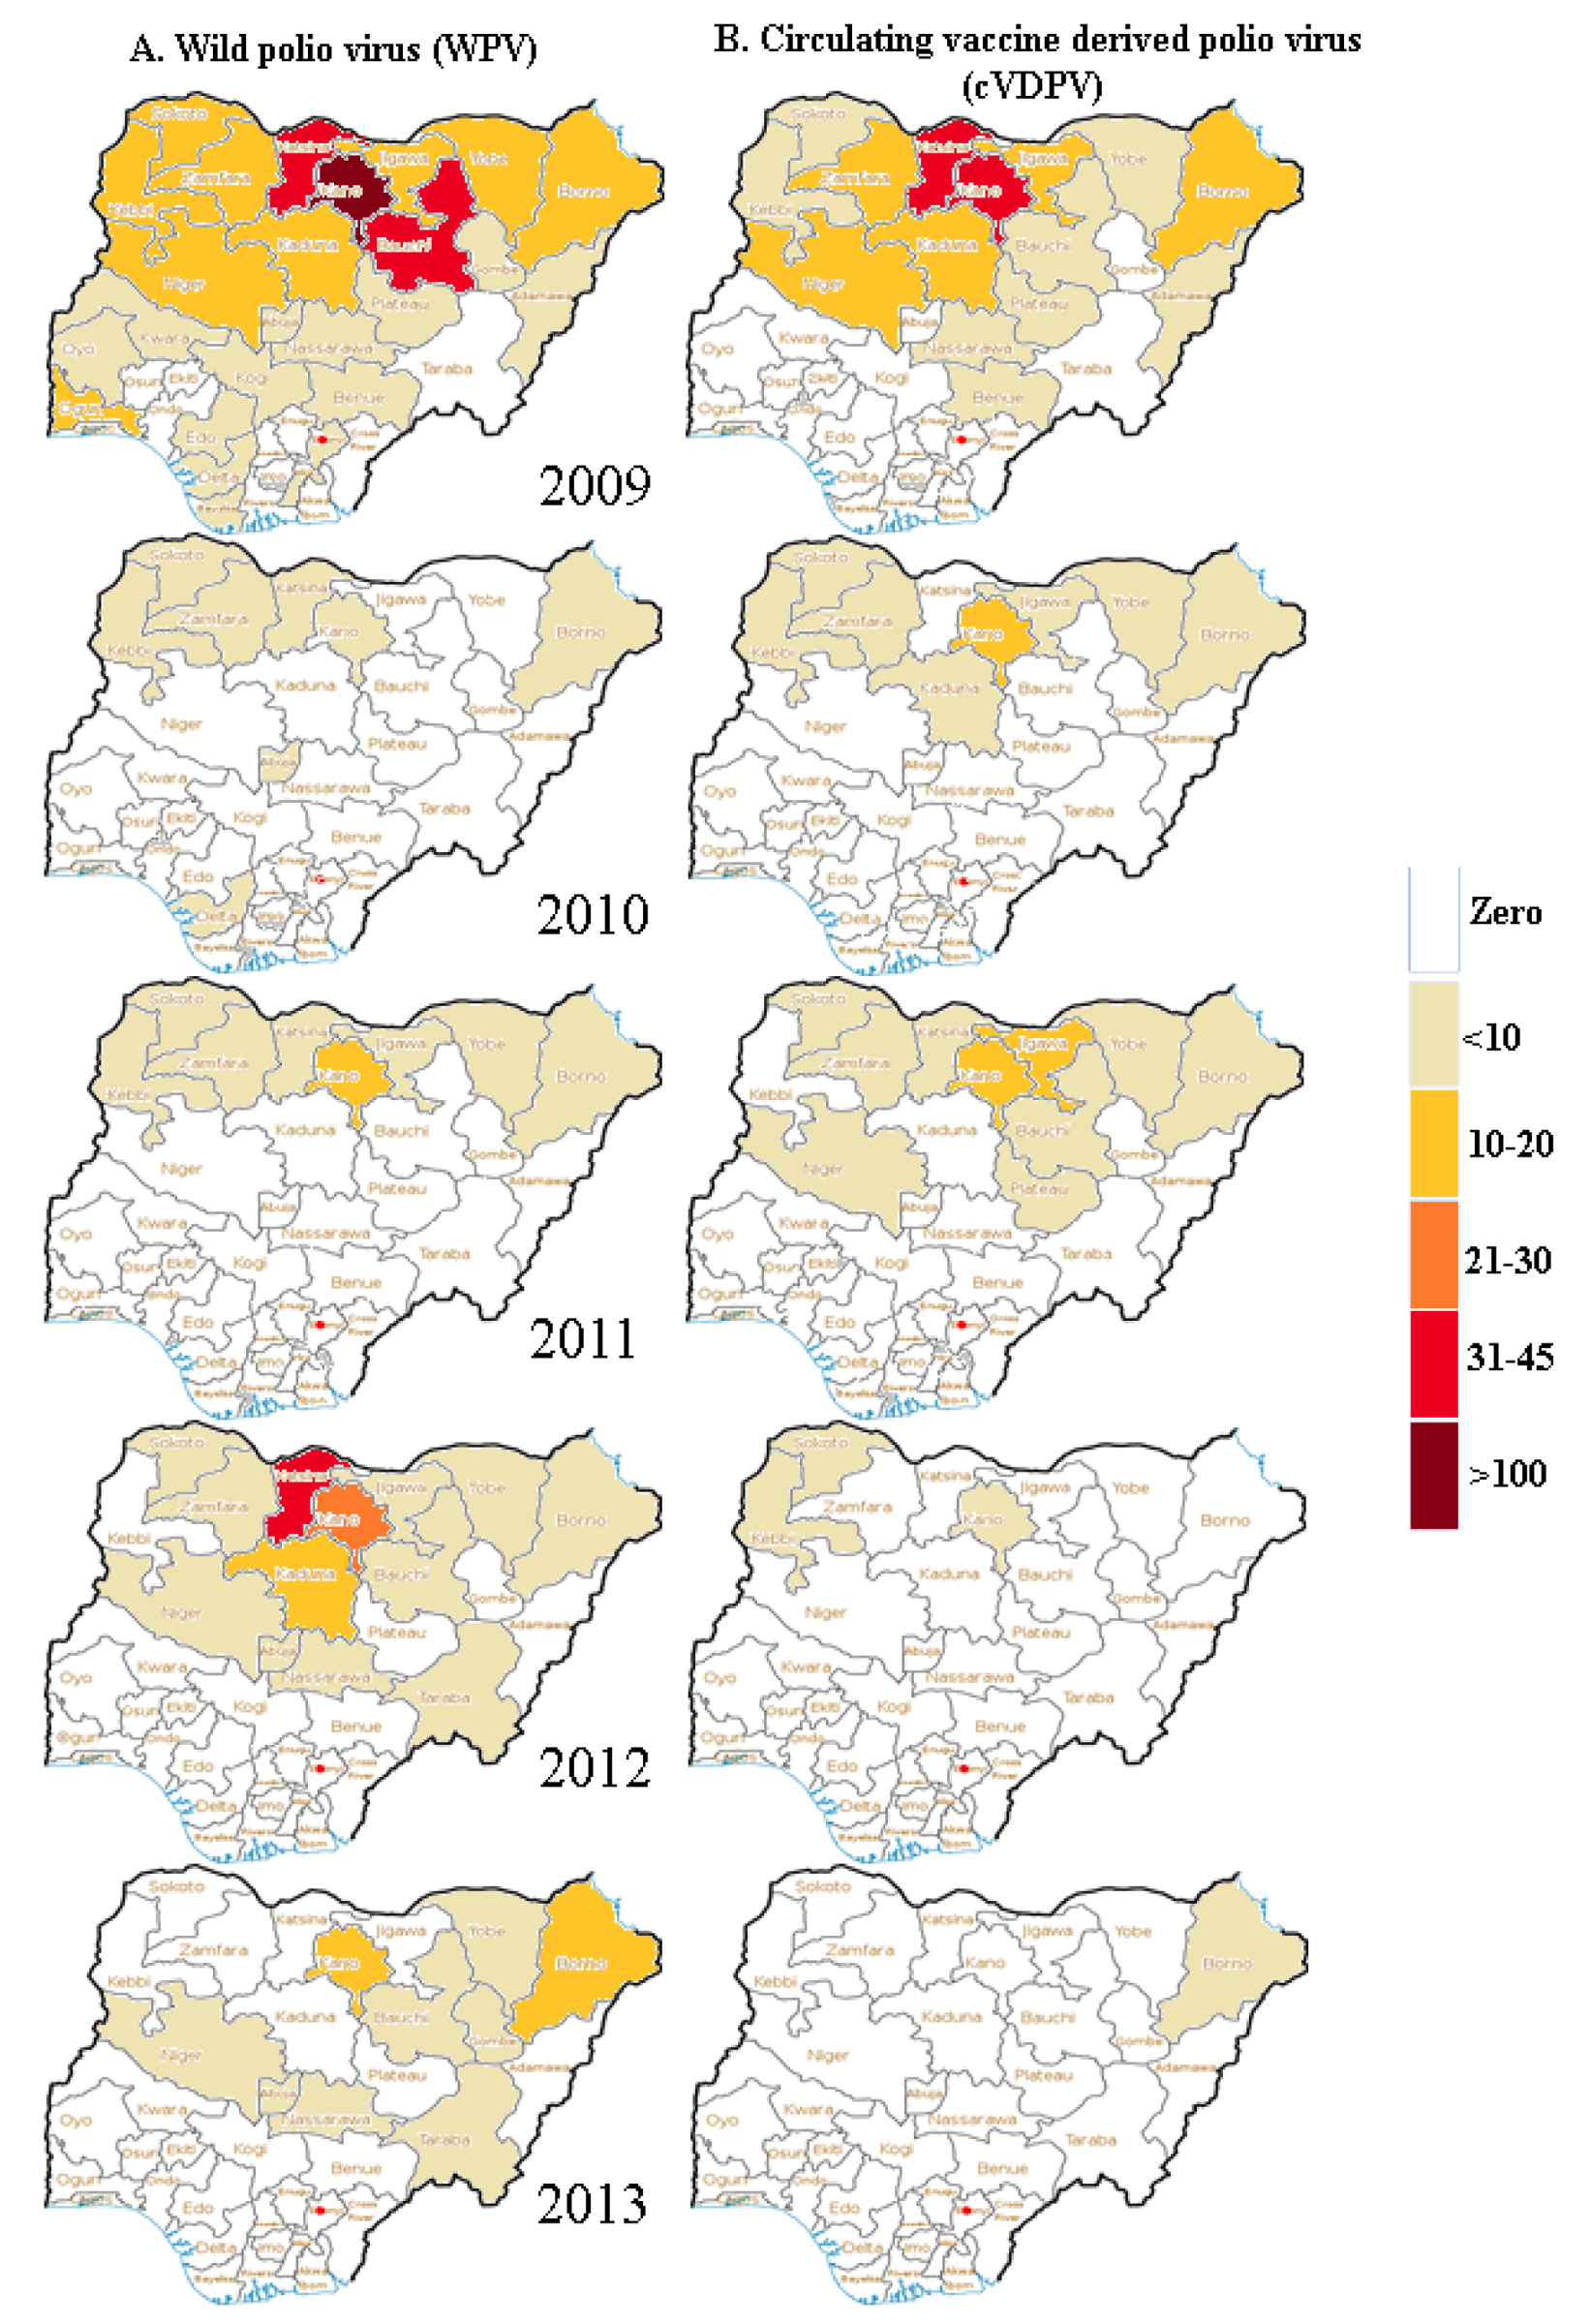 Pattern of occurrence of cases of wild poliovirus and circulating vaccine-derived poliovirus in Nigeria from 2009 to 2013.